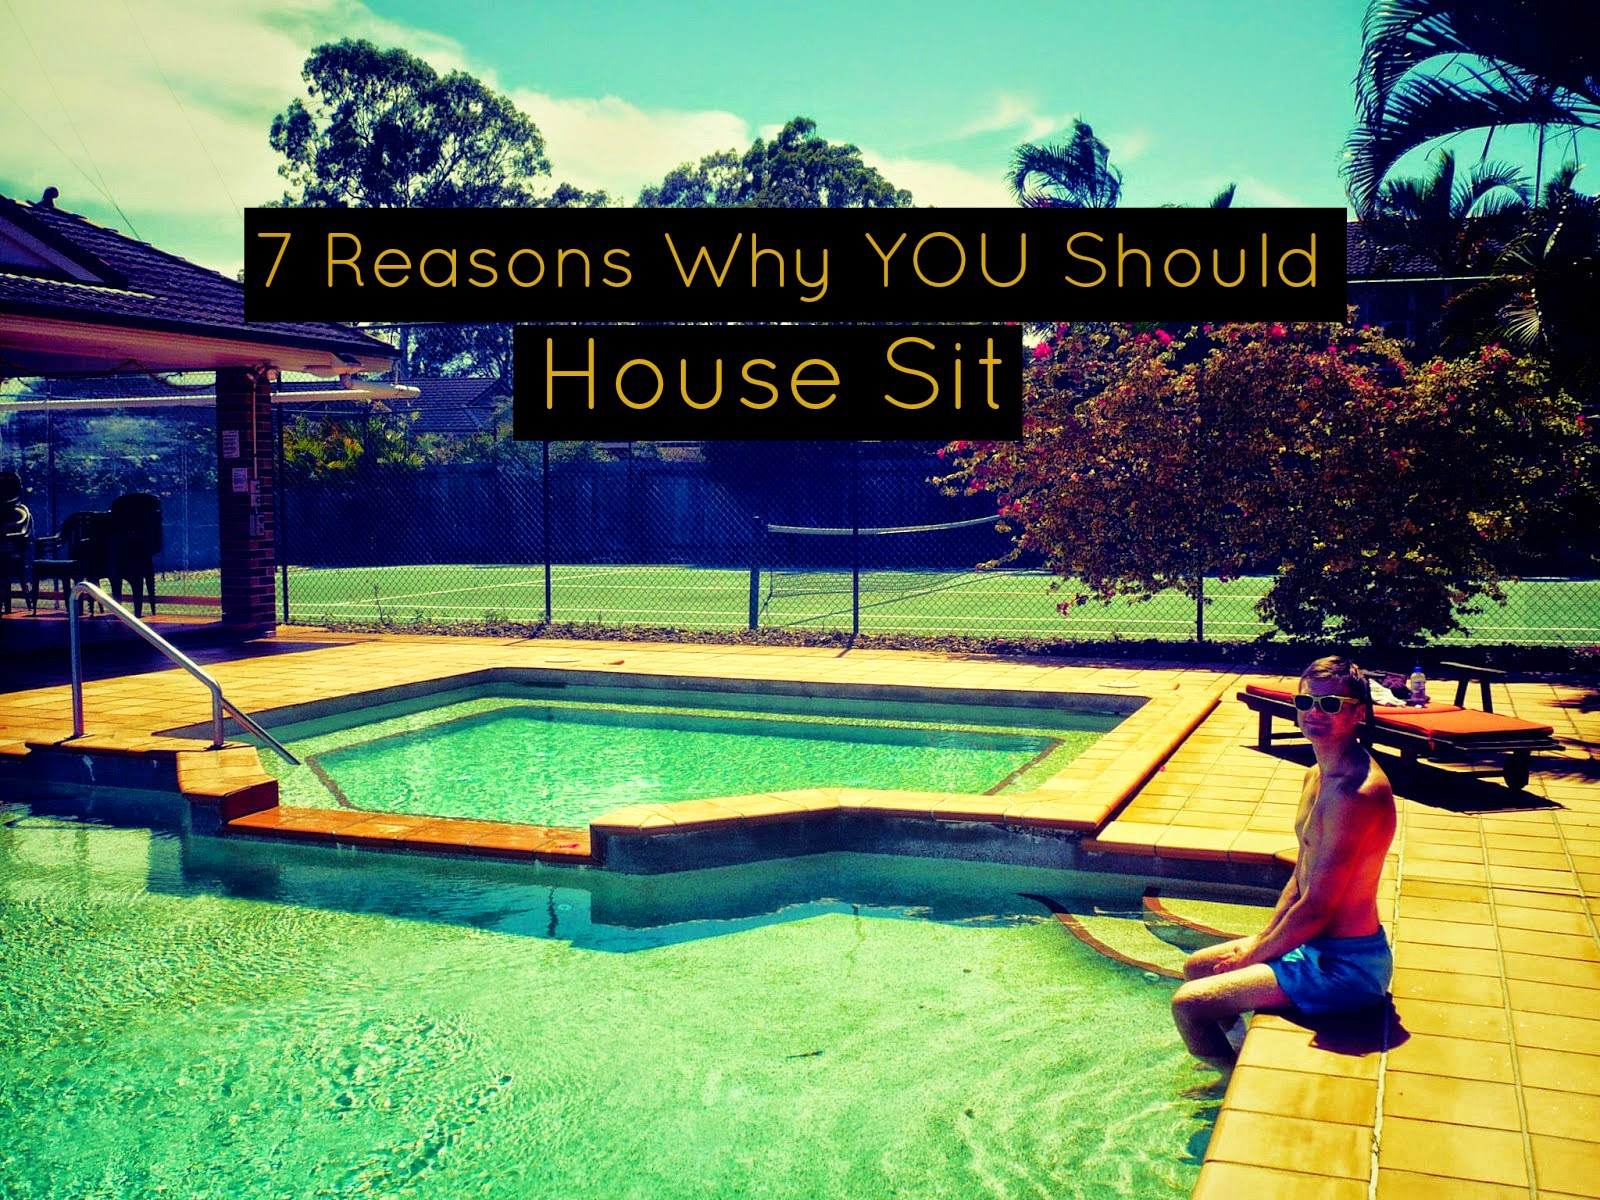 reasons you should house sit